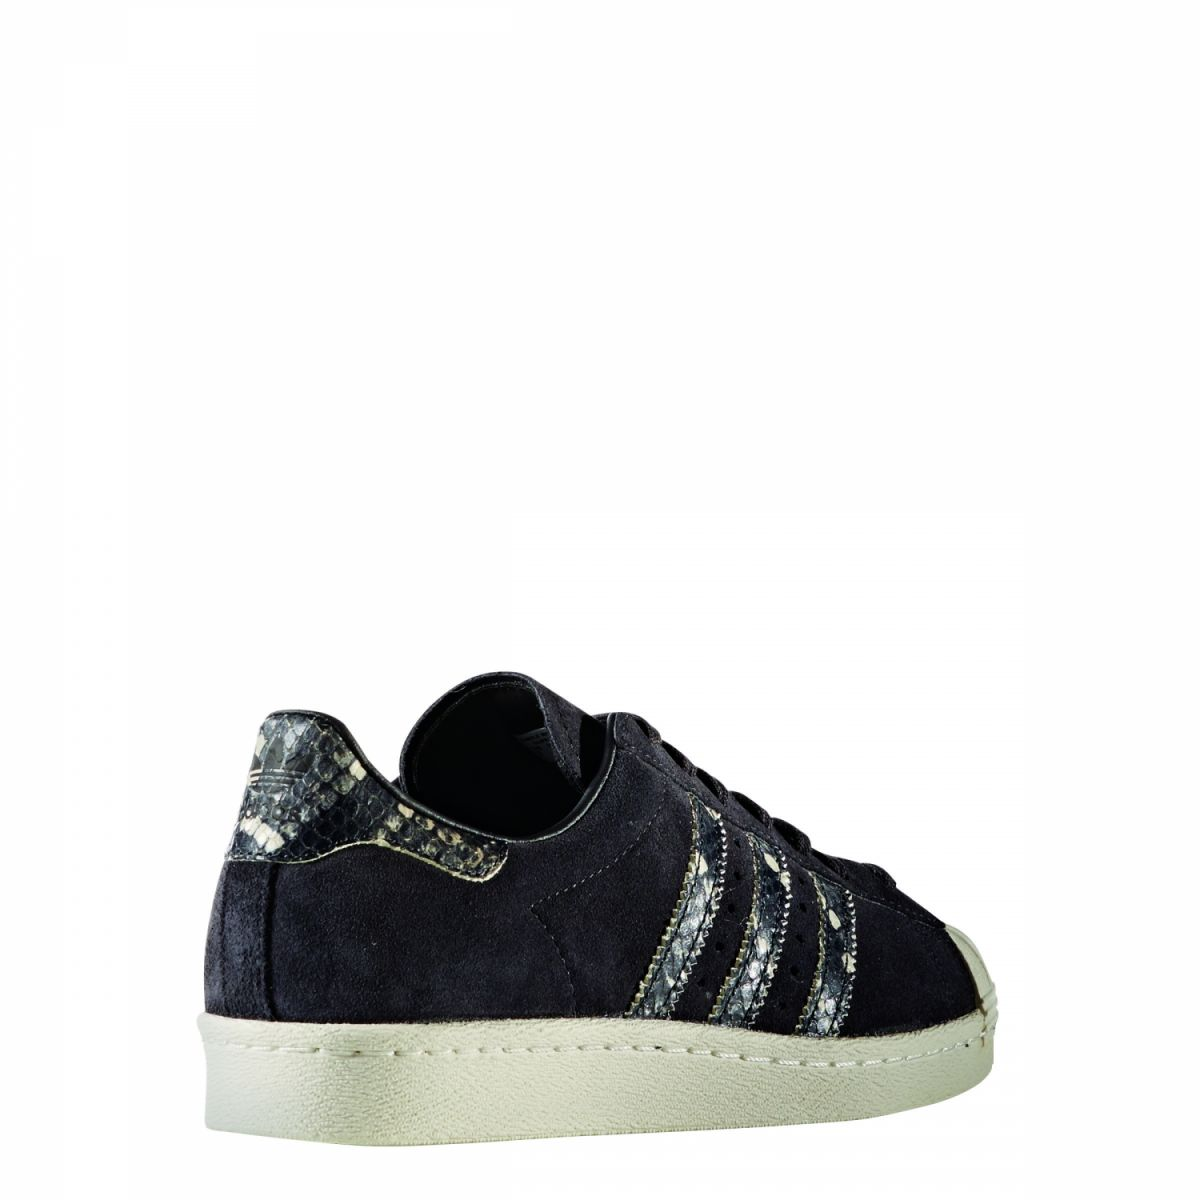 adidas originals superstar 80s w damen sneaker anthrazit. Black Bedroom Furniture Sets. Home Design Ideas